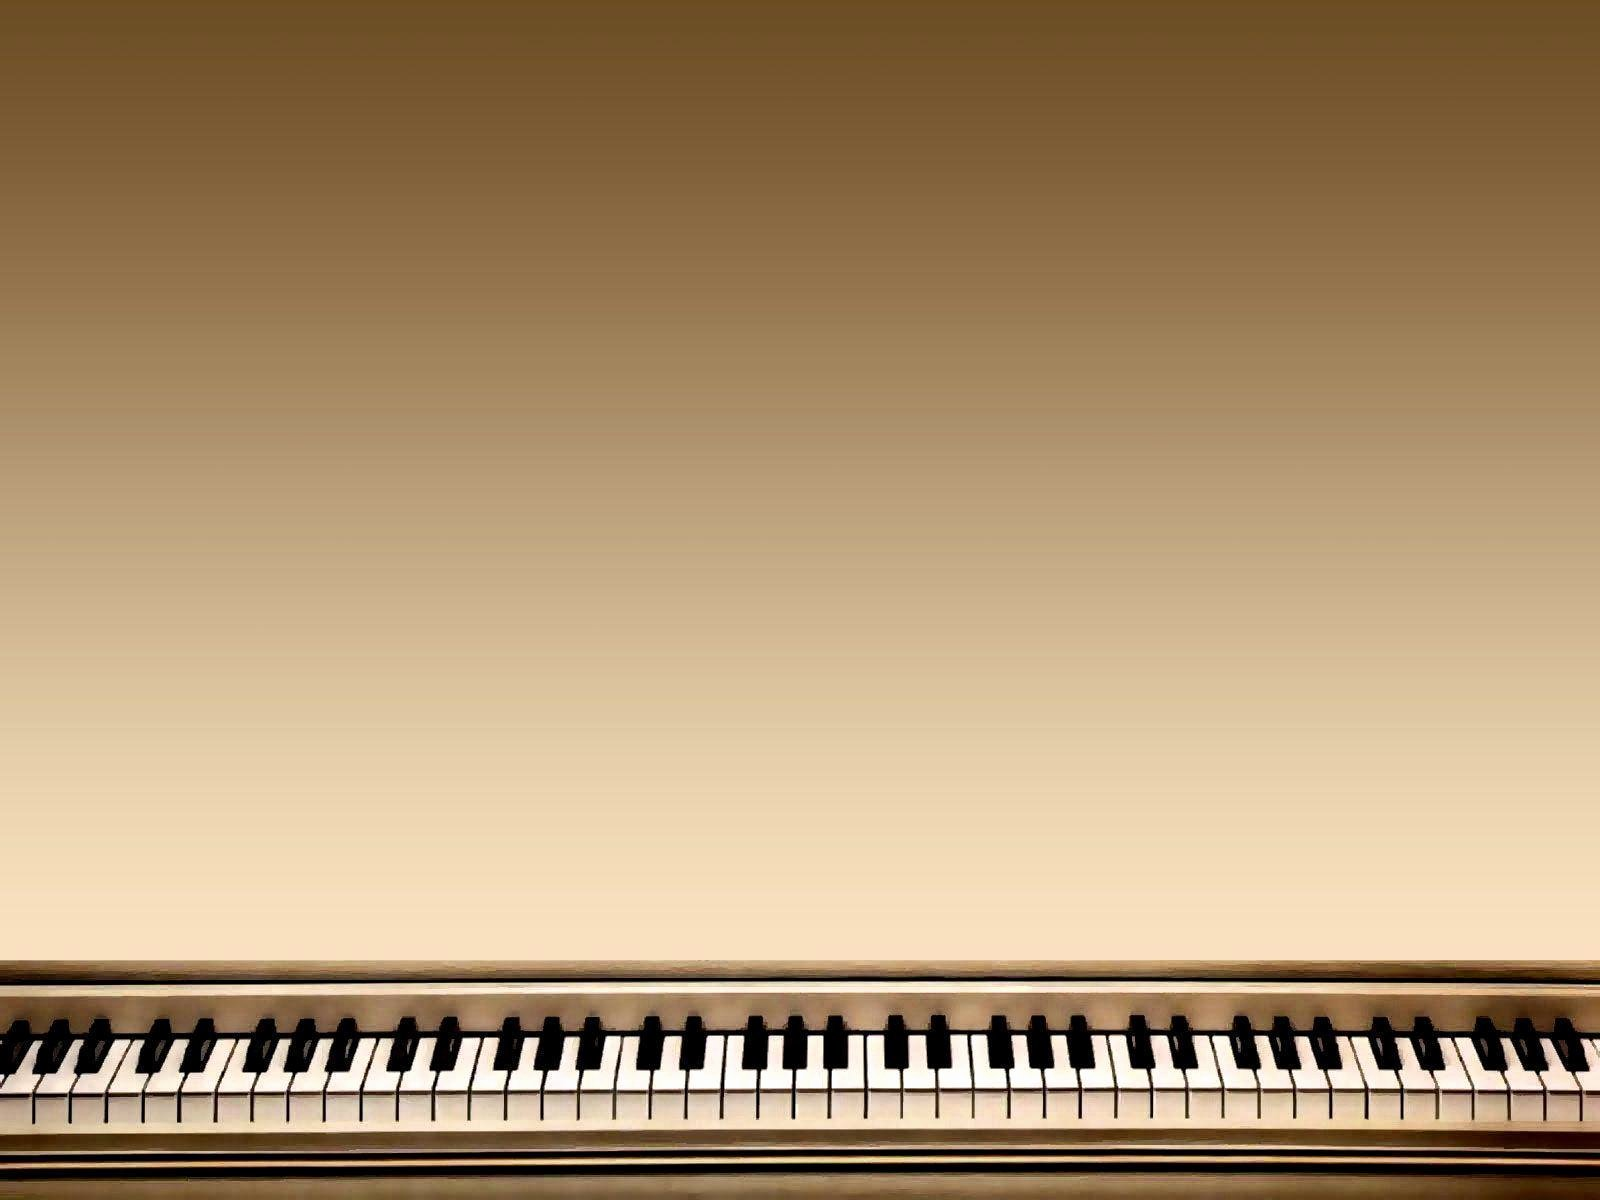 Free Music Background Images Beautiful Piano Backgrounds Music Wallpaper Cave